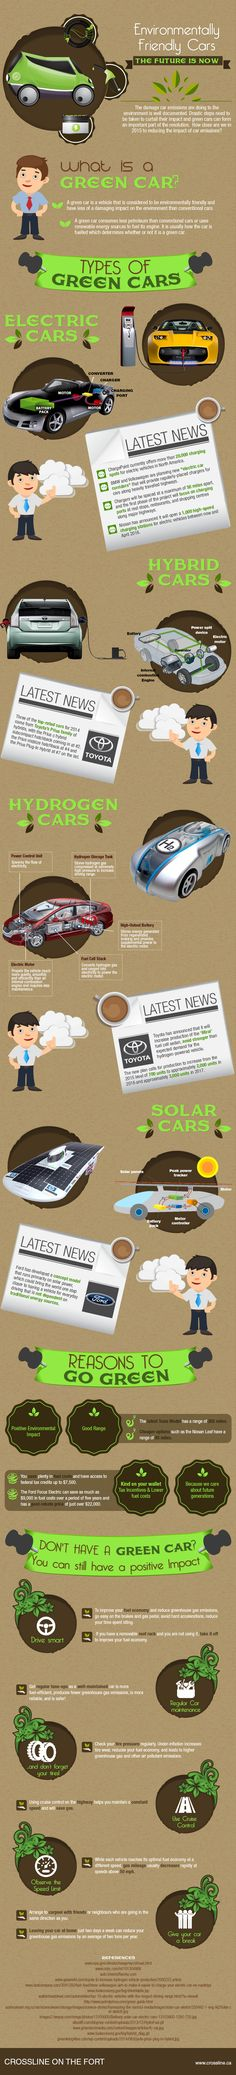 This infographic details the types of green cars. From electric cars, hybrid cars, hydrogen cars and solar cars. Hydrogen Car, Hybrids And Electric Cars, Sustainable Transport, Car Facts, Alternative Fuel, Eco Friendly Cars, Green News, Solar Car, Autos